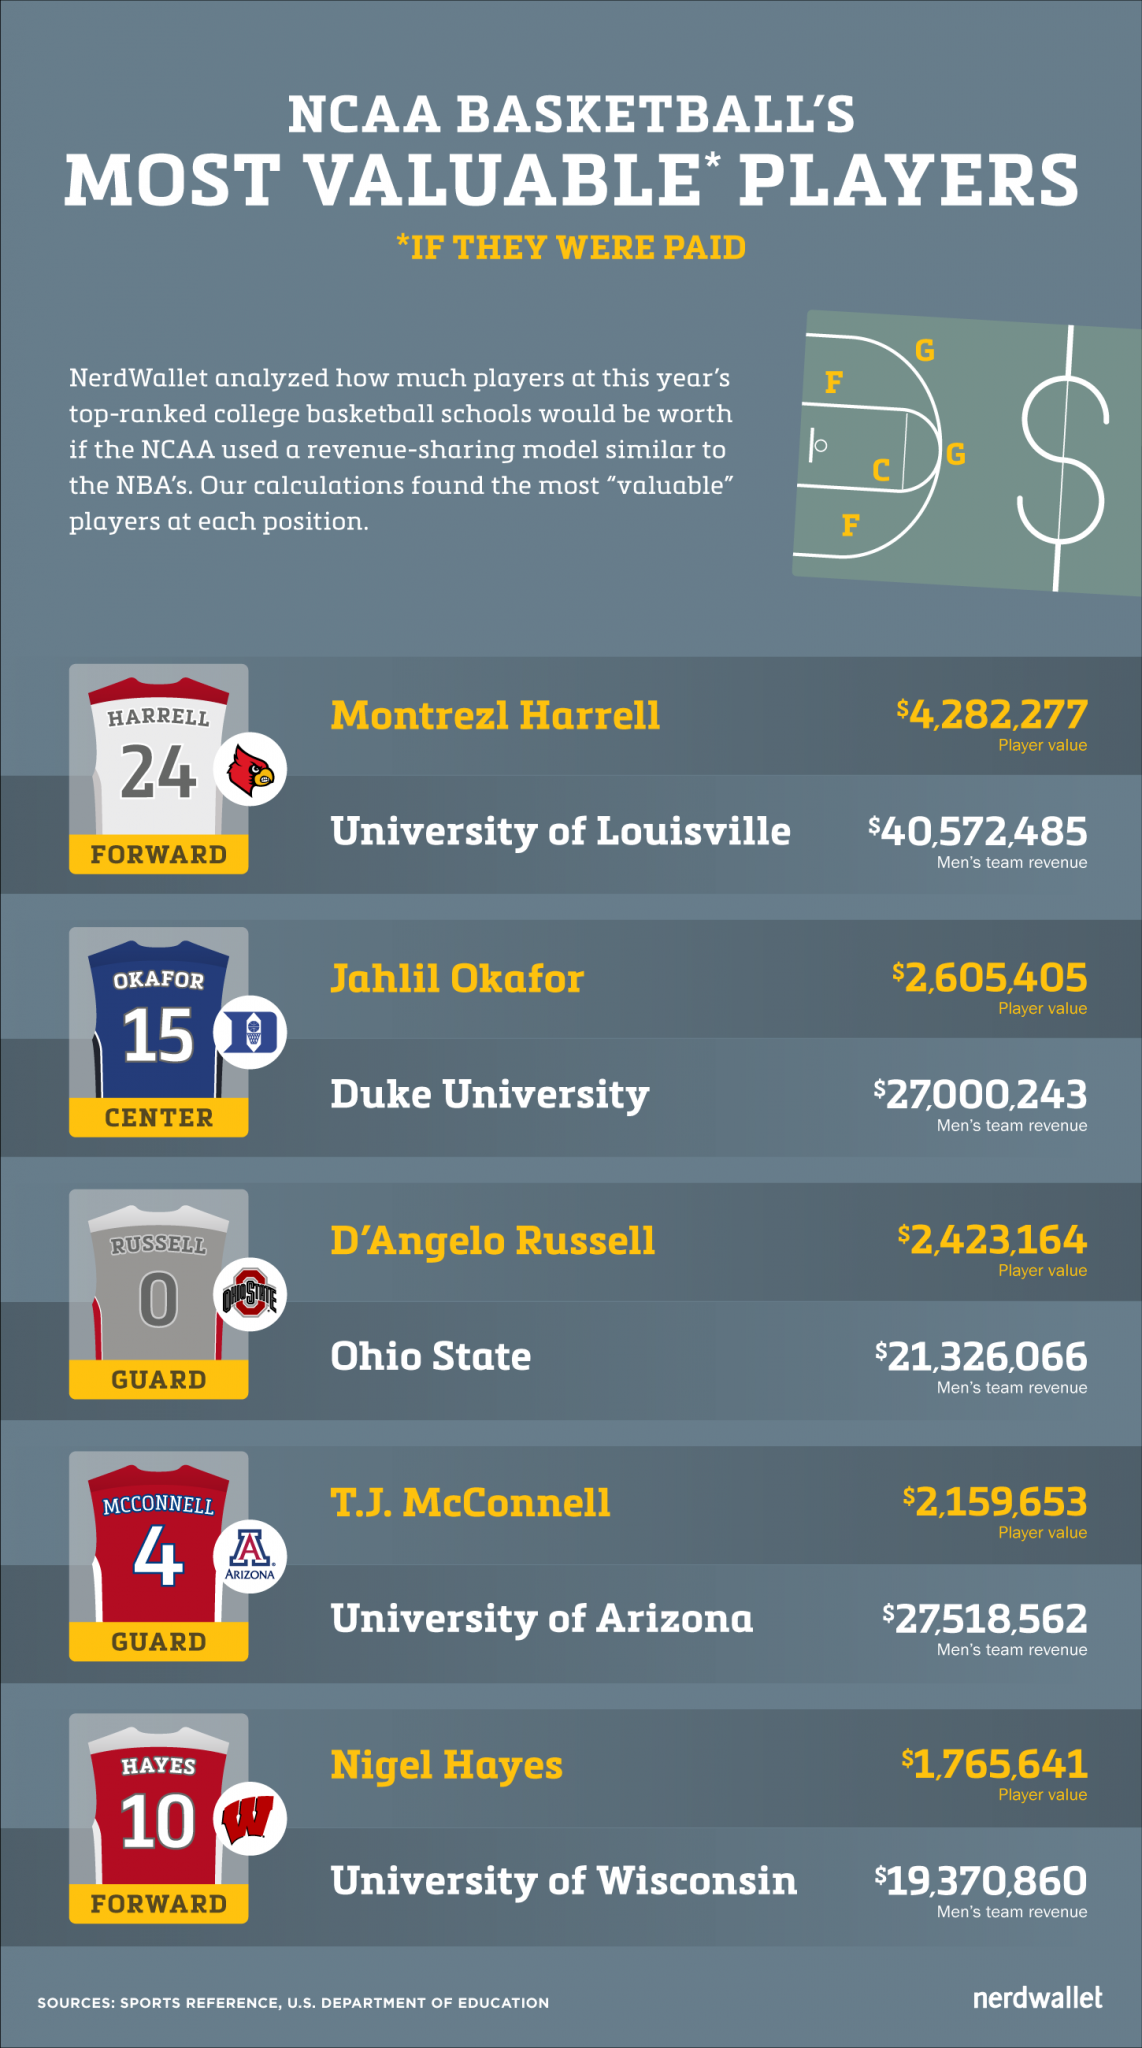 March Madness? Top NCAA Players Worth $488,000